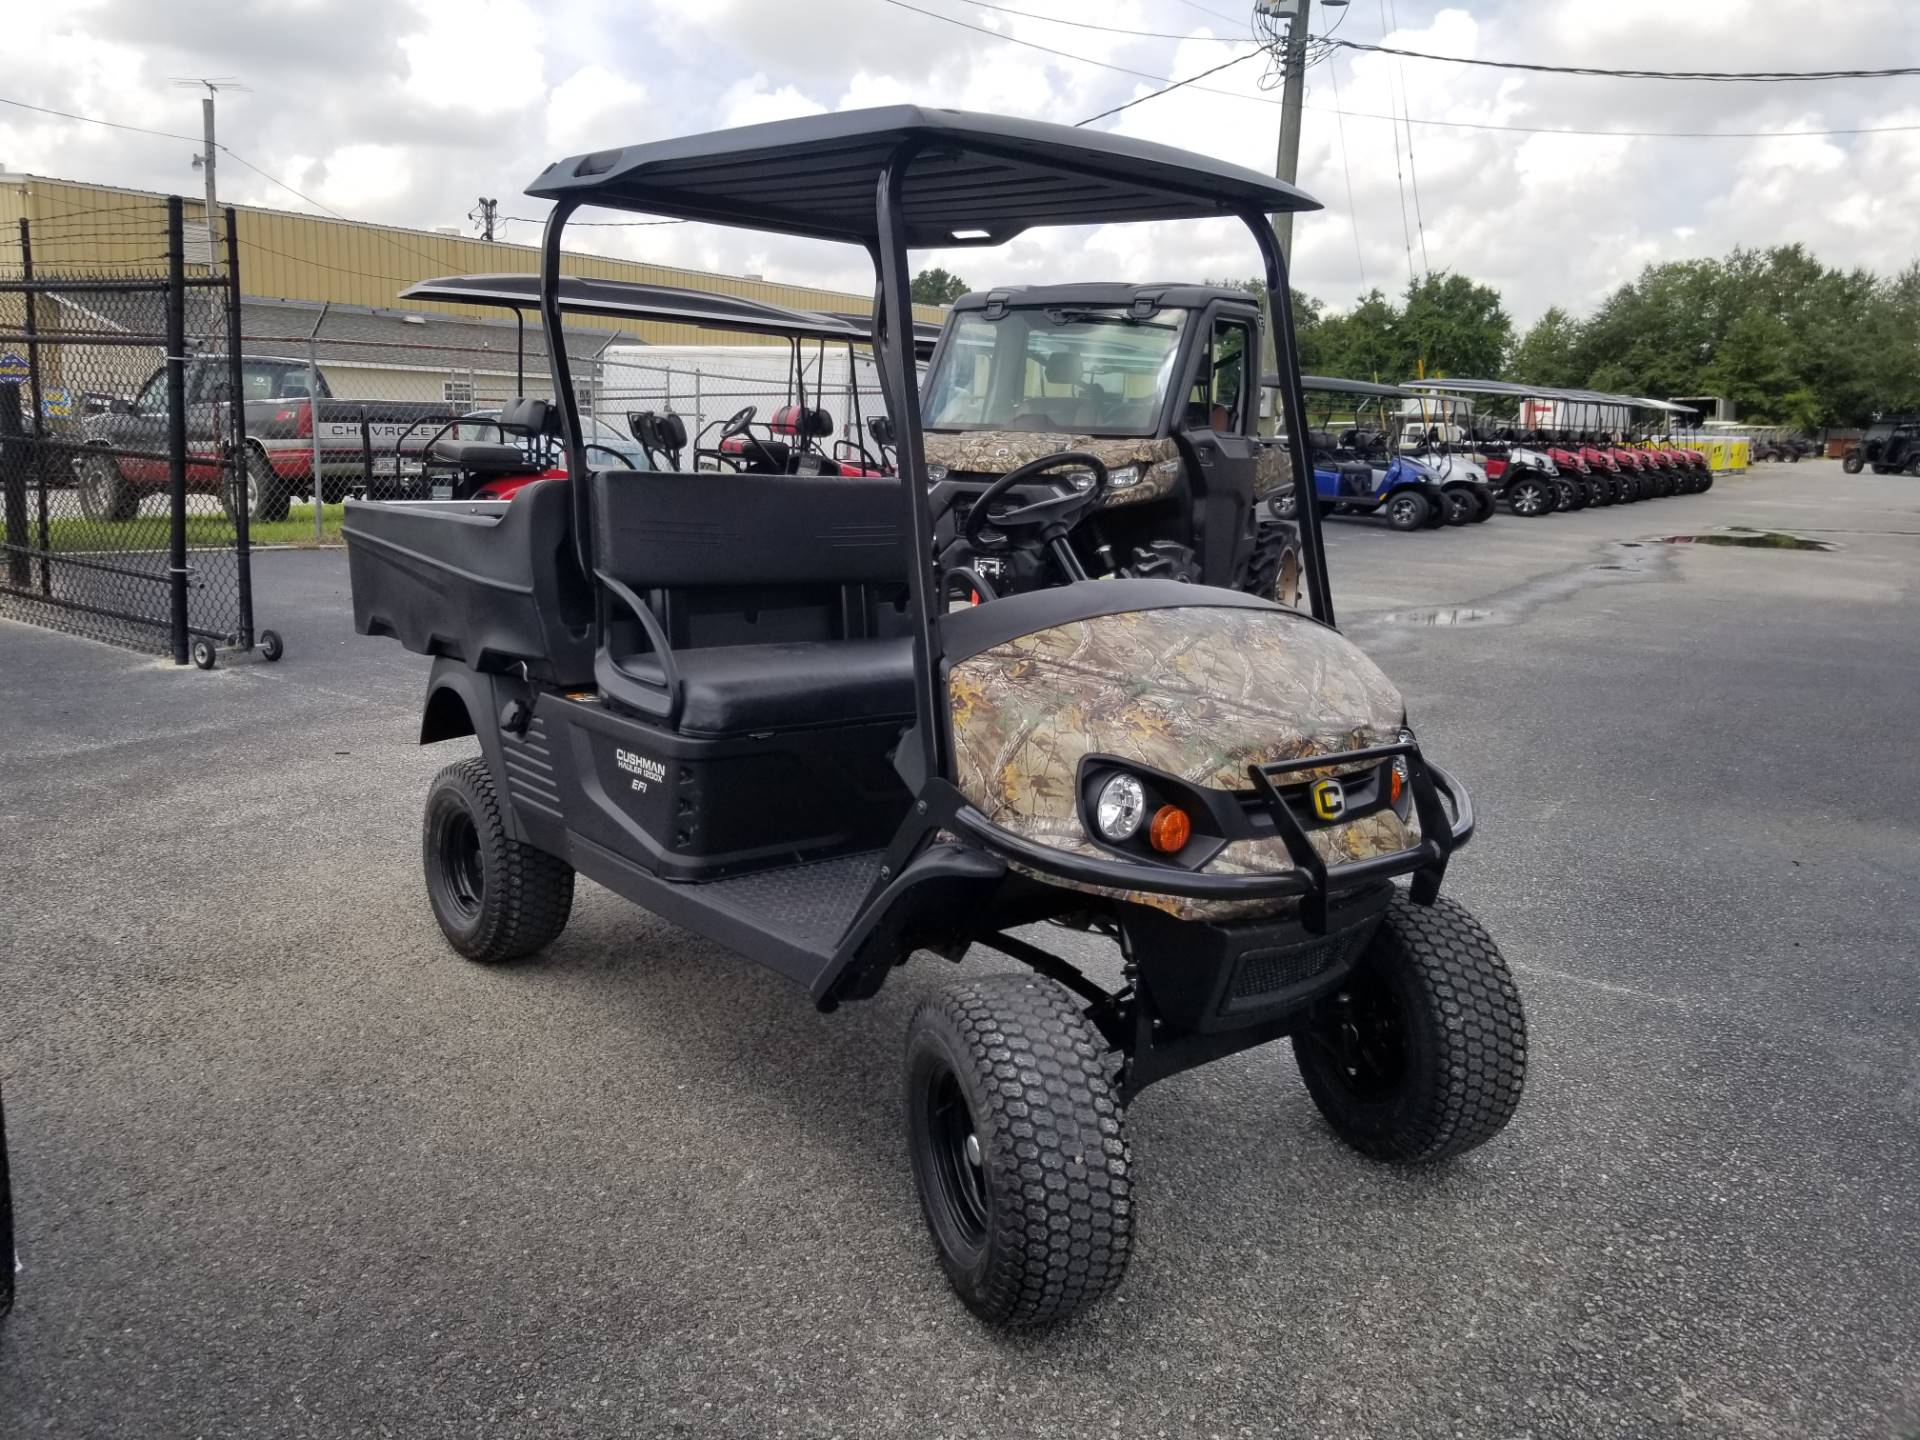 2021 Cushman 1200x in Douglas, Georgia - Photo 2